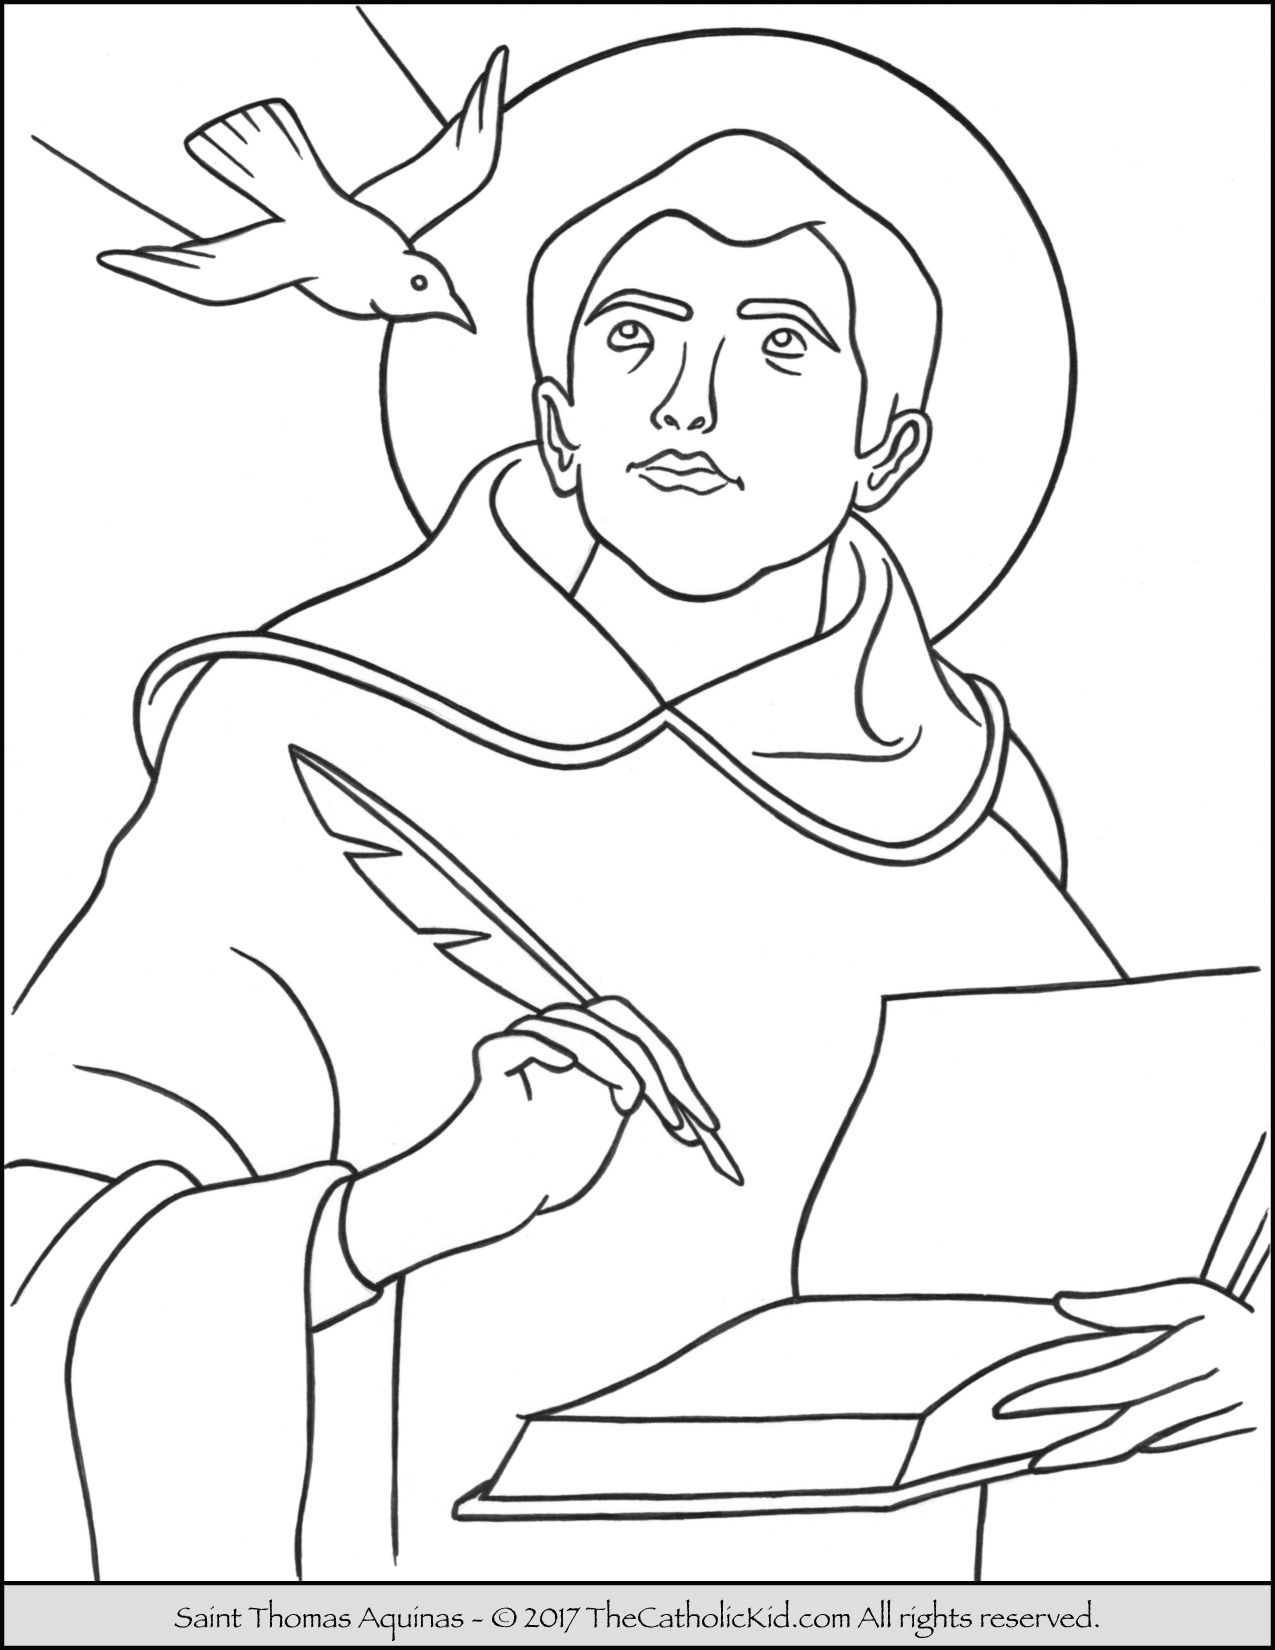 Pin by TheCatholicKid.com on Catholic Coloring Pages for Kids ...